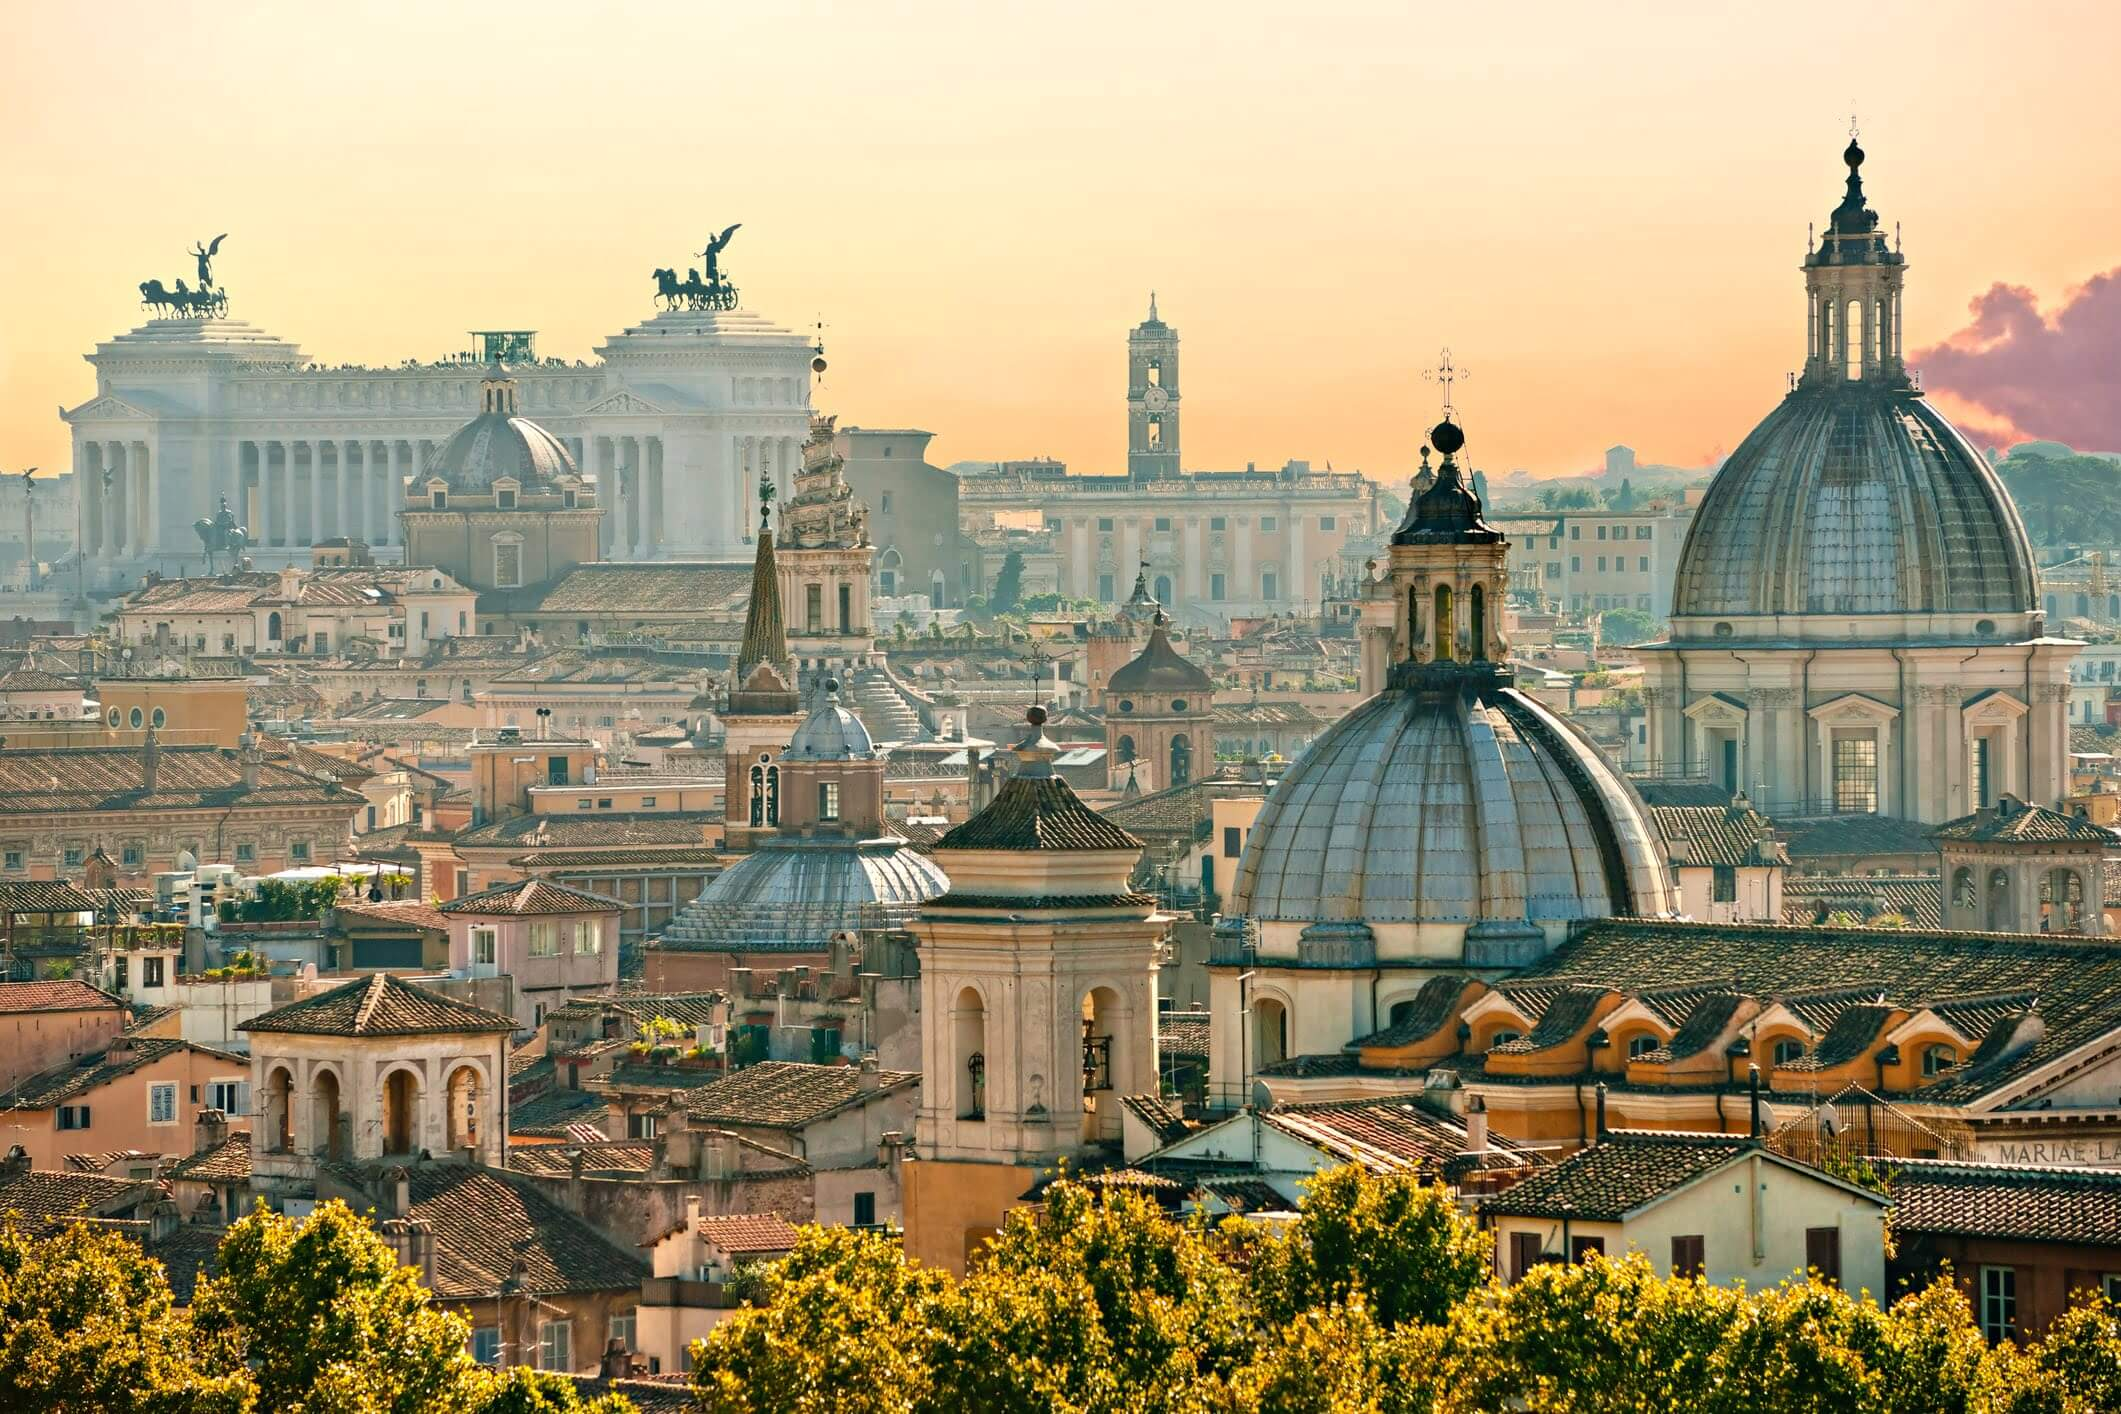 Rome's skyline, with Monumento Nazionale a Vittorio Emanuele II in the background